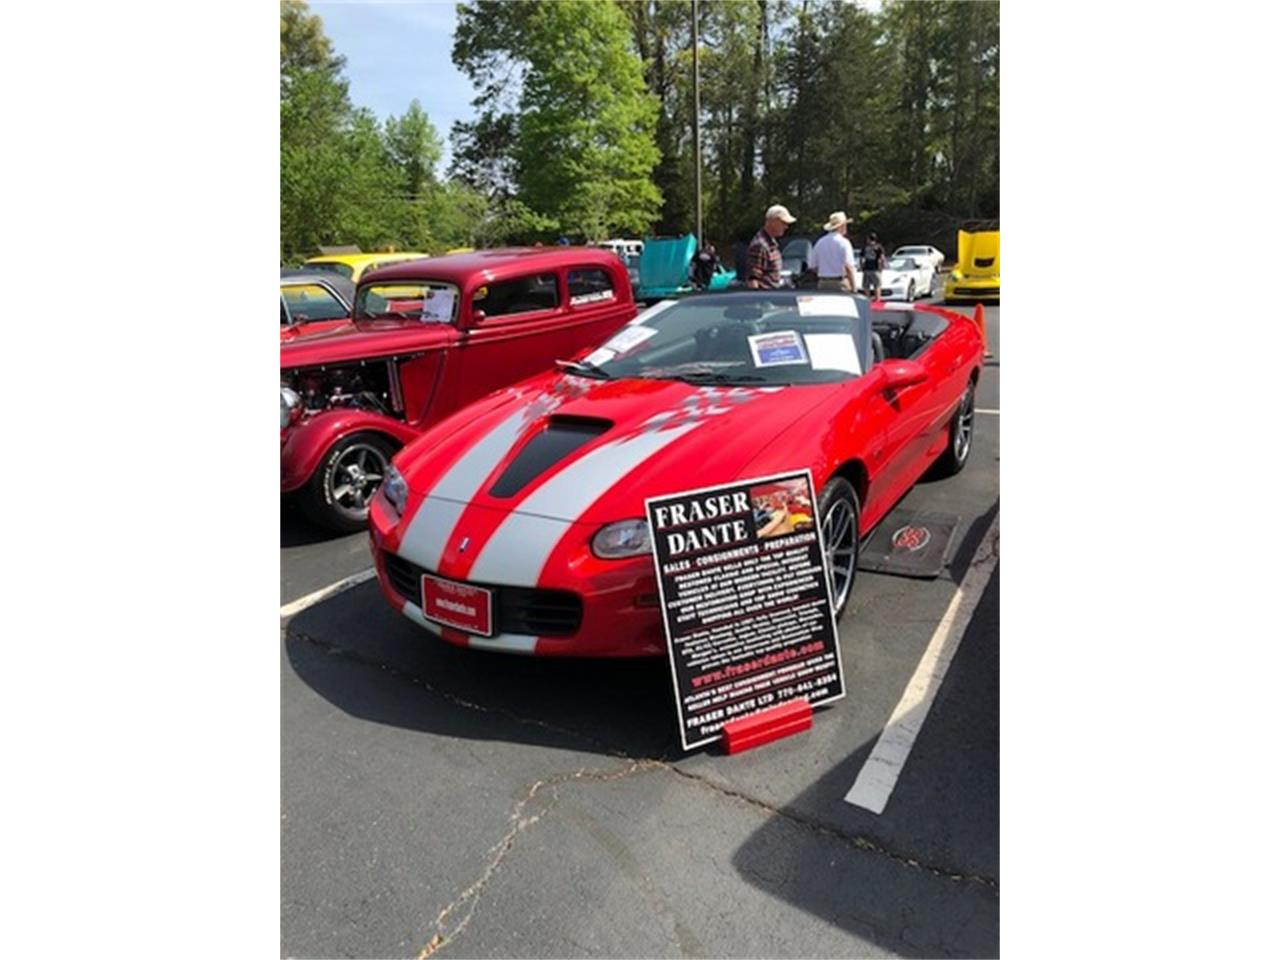 Large Picture of '02 Chevrolet Camaro Offered by Fraser Dante - F0Y5